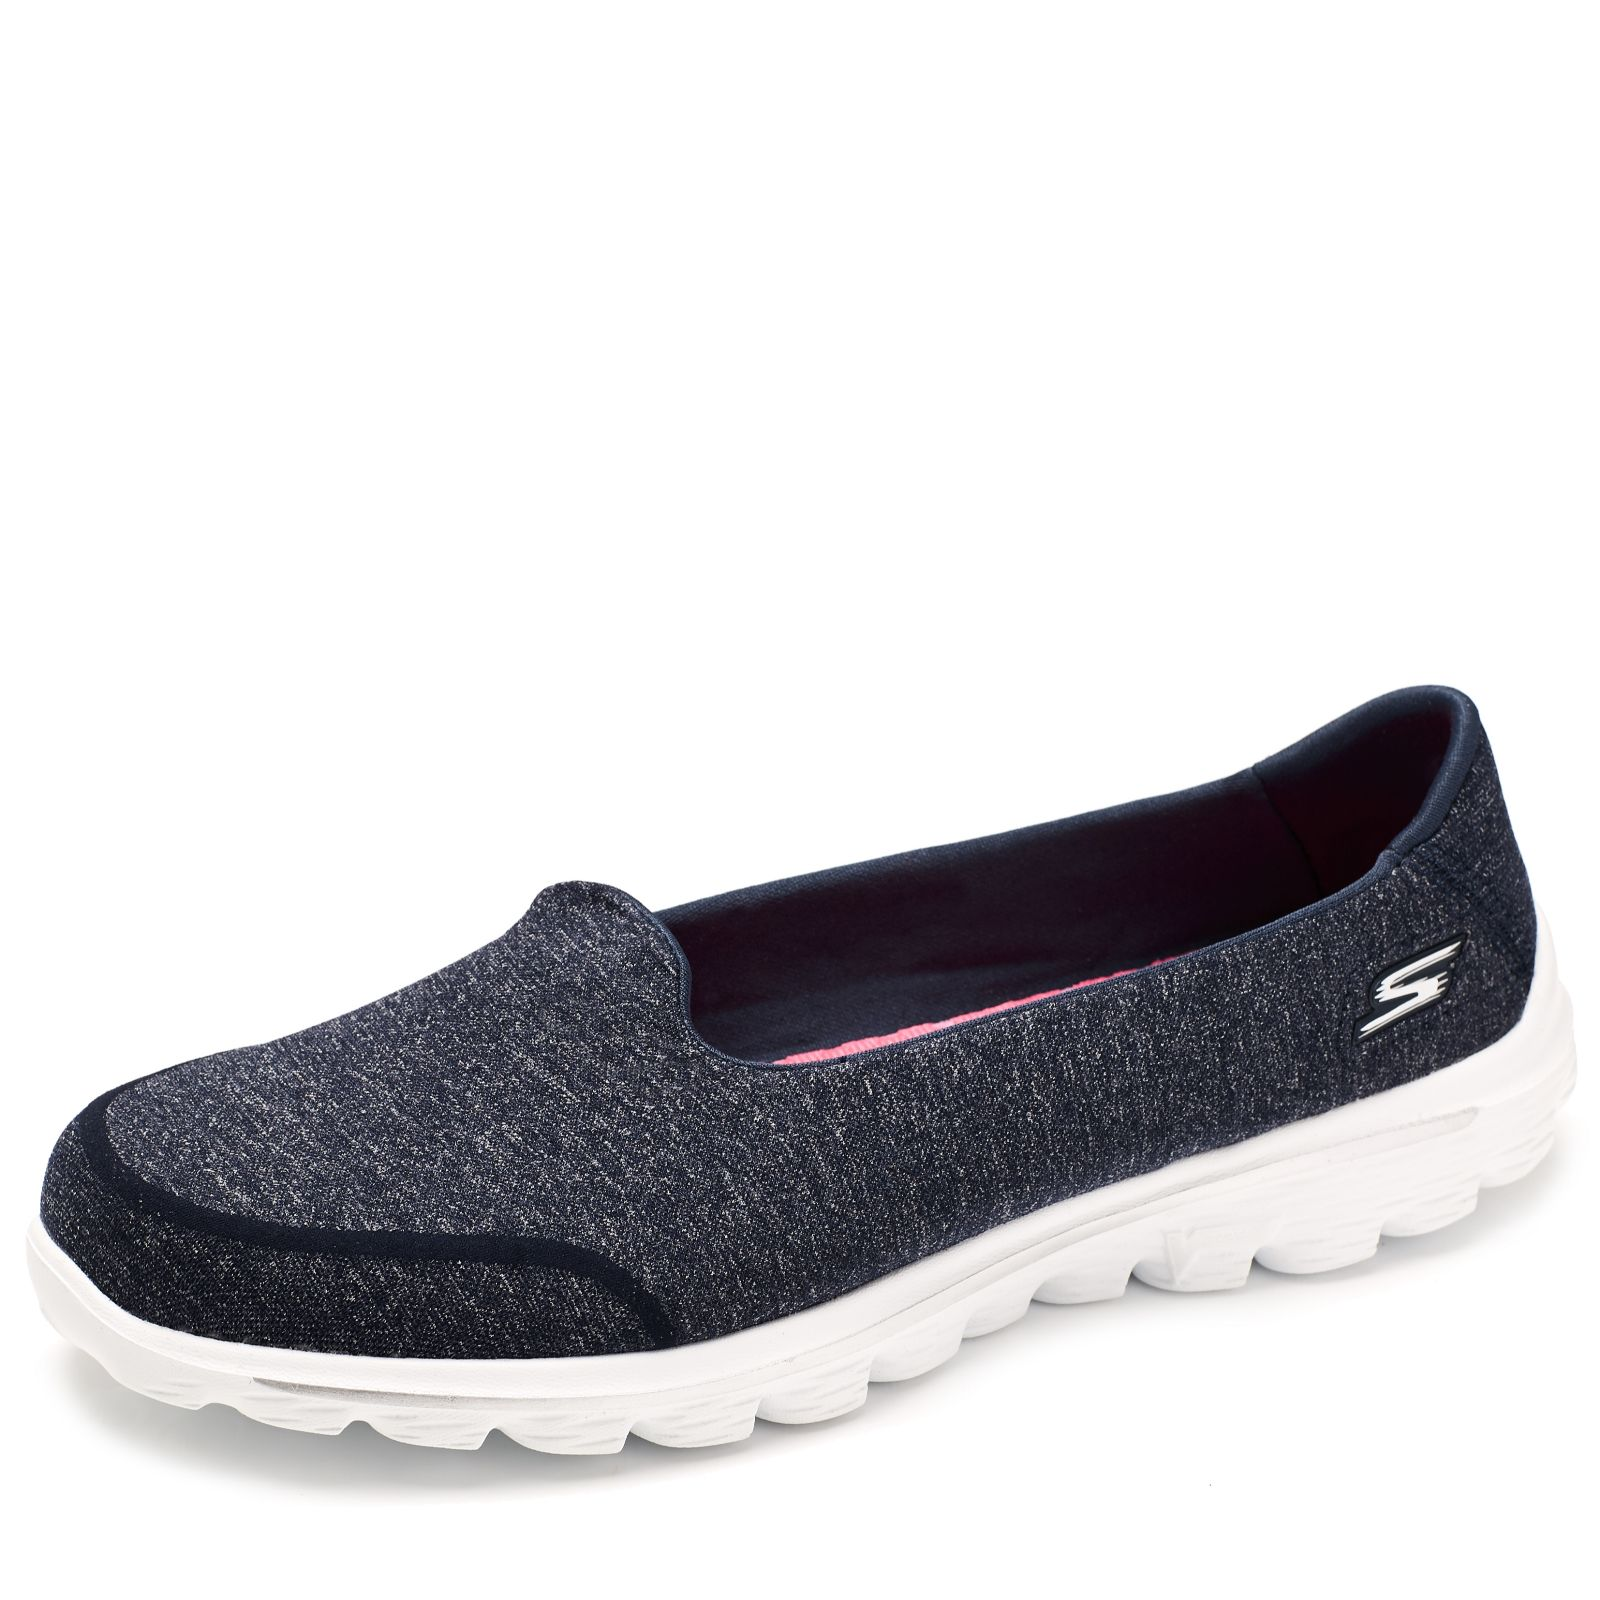 0e639bfb2f7a Skechers GOwalk 2 Super Sock Walking Shoe with Goga Mat Insole - Page 1 -  QVC UK